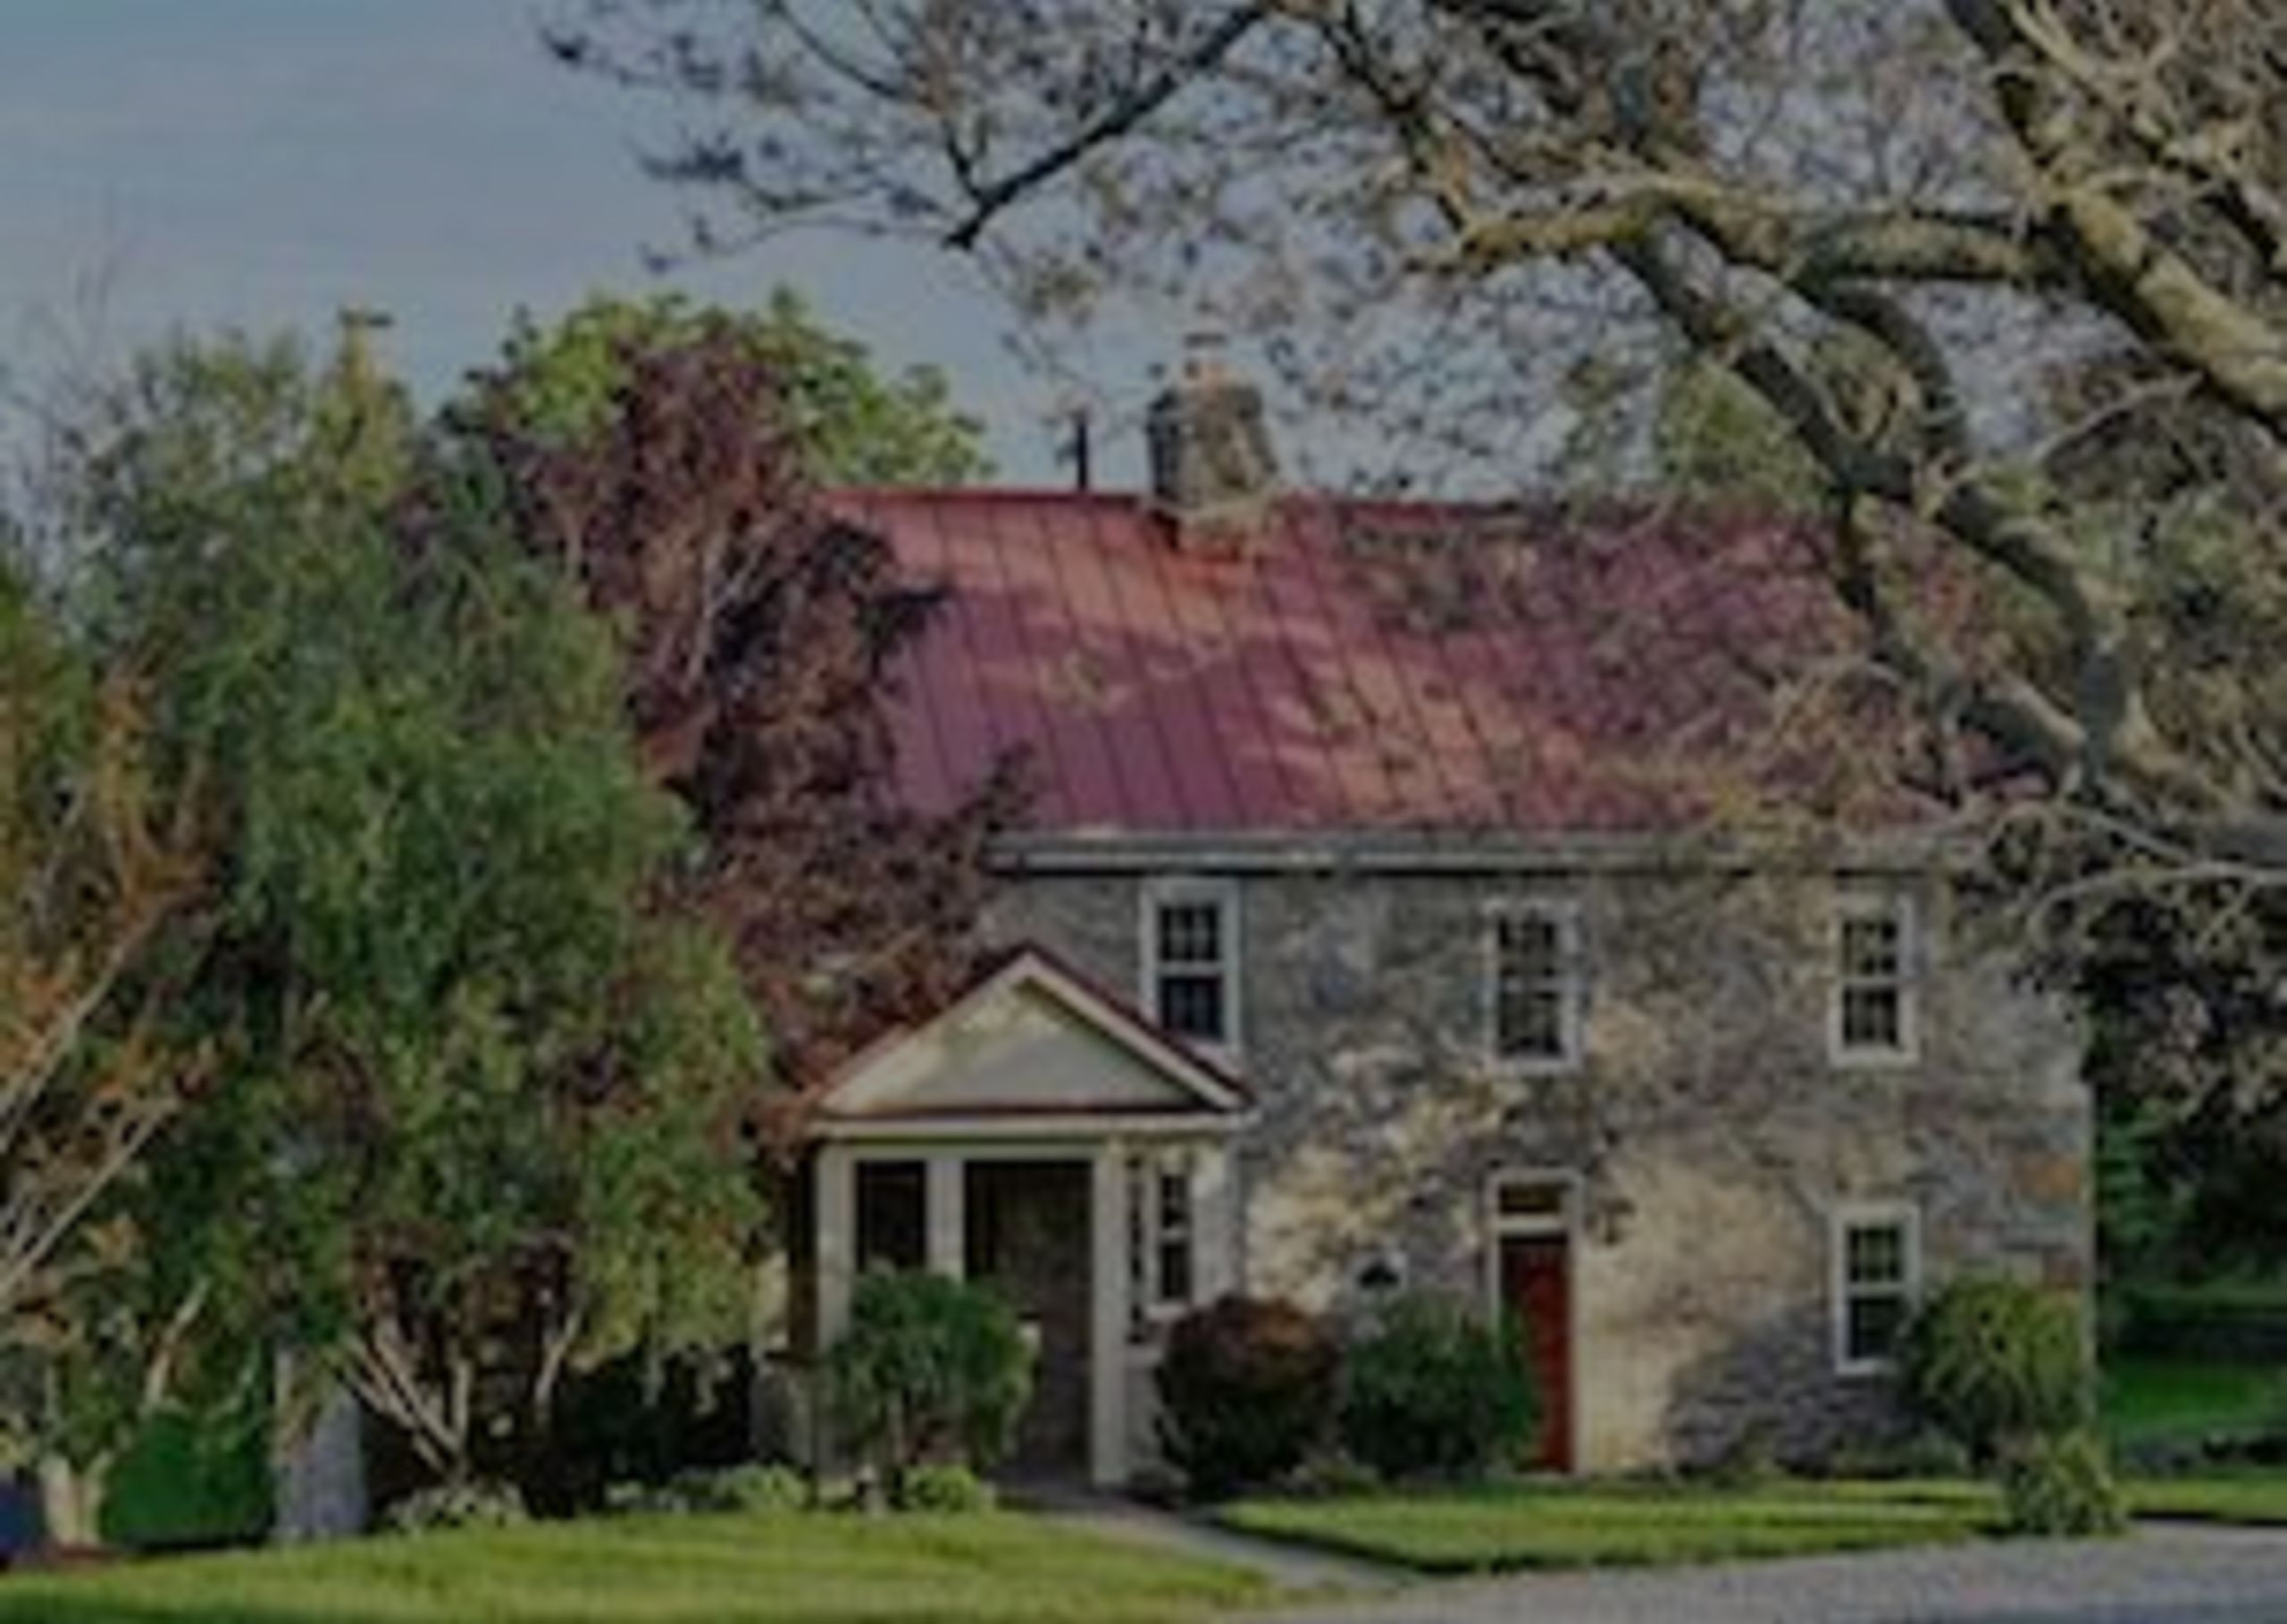 14 MUST SEE Virginia Historic Properties For Sale